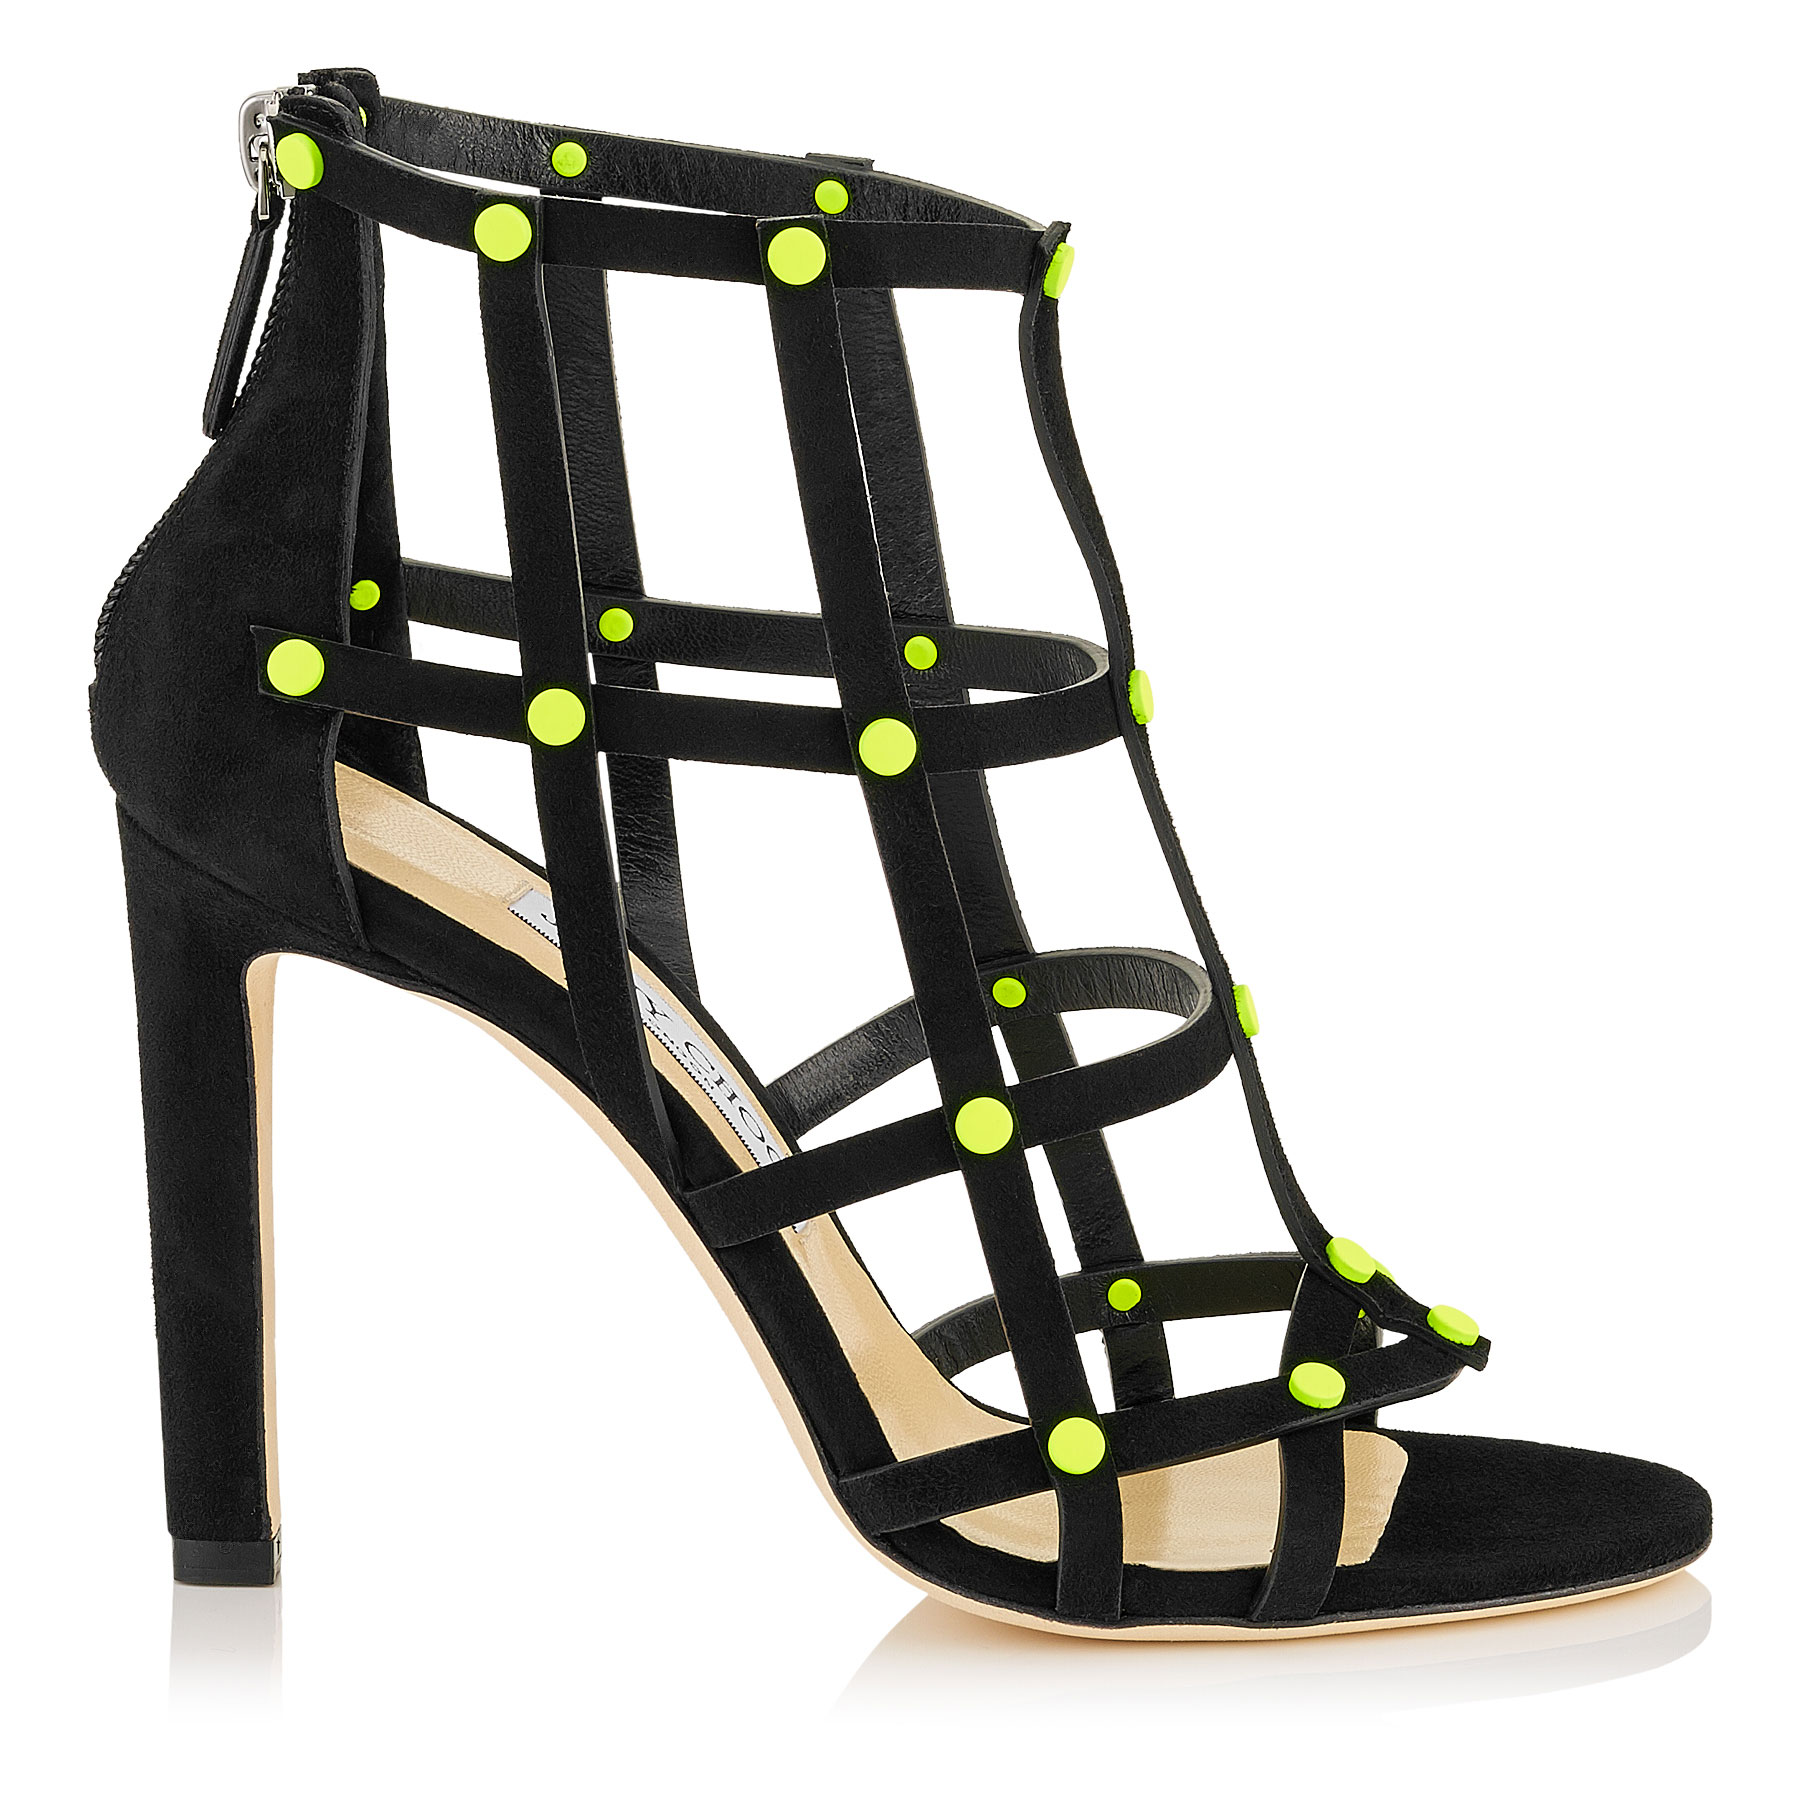 TINA 100 Black Suede Sandals with Shocking Yellow Neon Studs